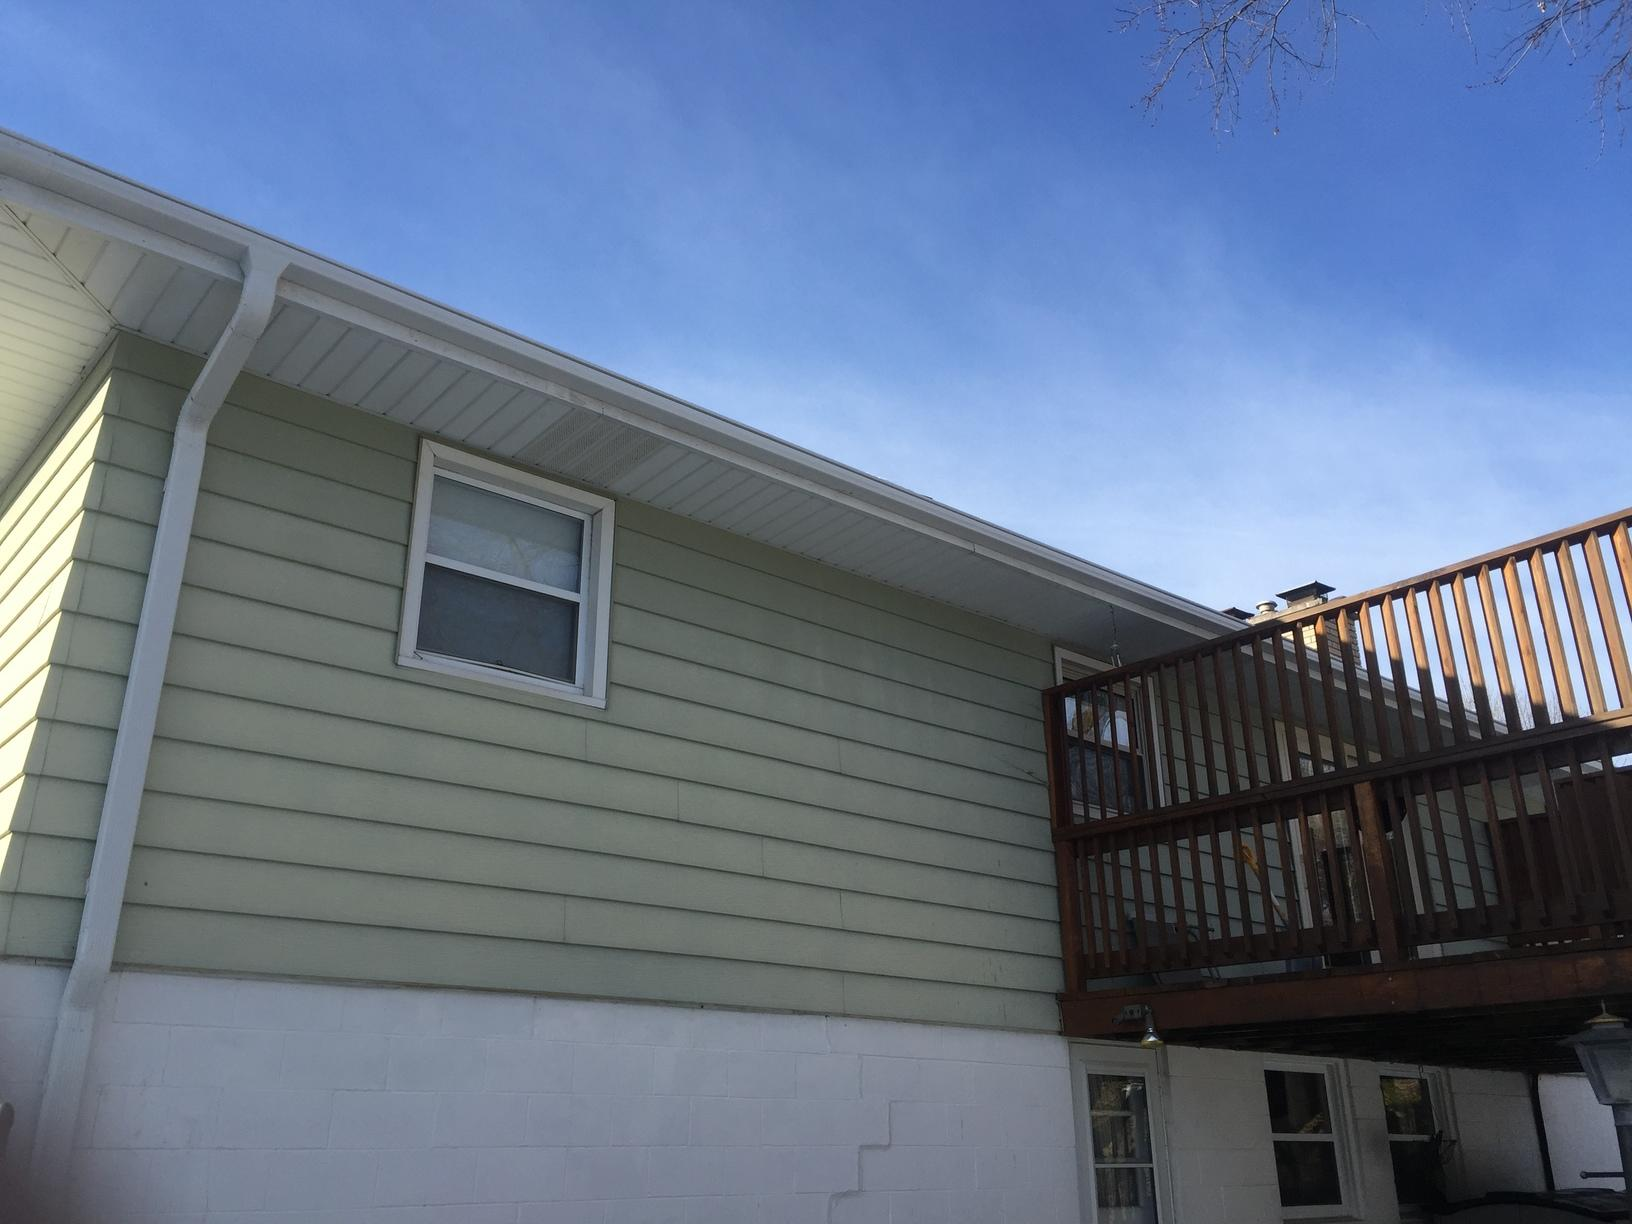 White LeafGuard Gutters Installed on home in Bellevue, NE - After Photo